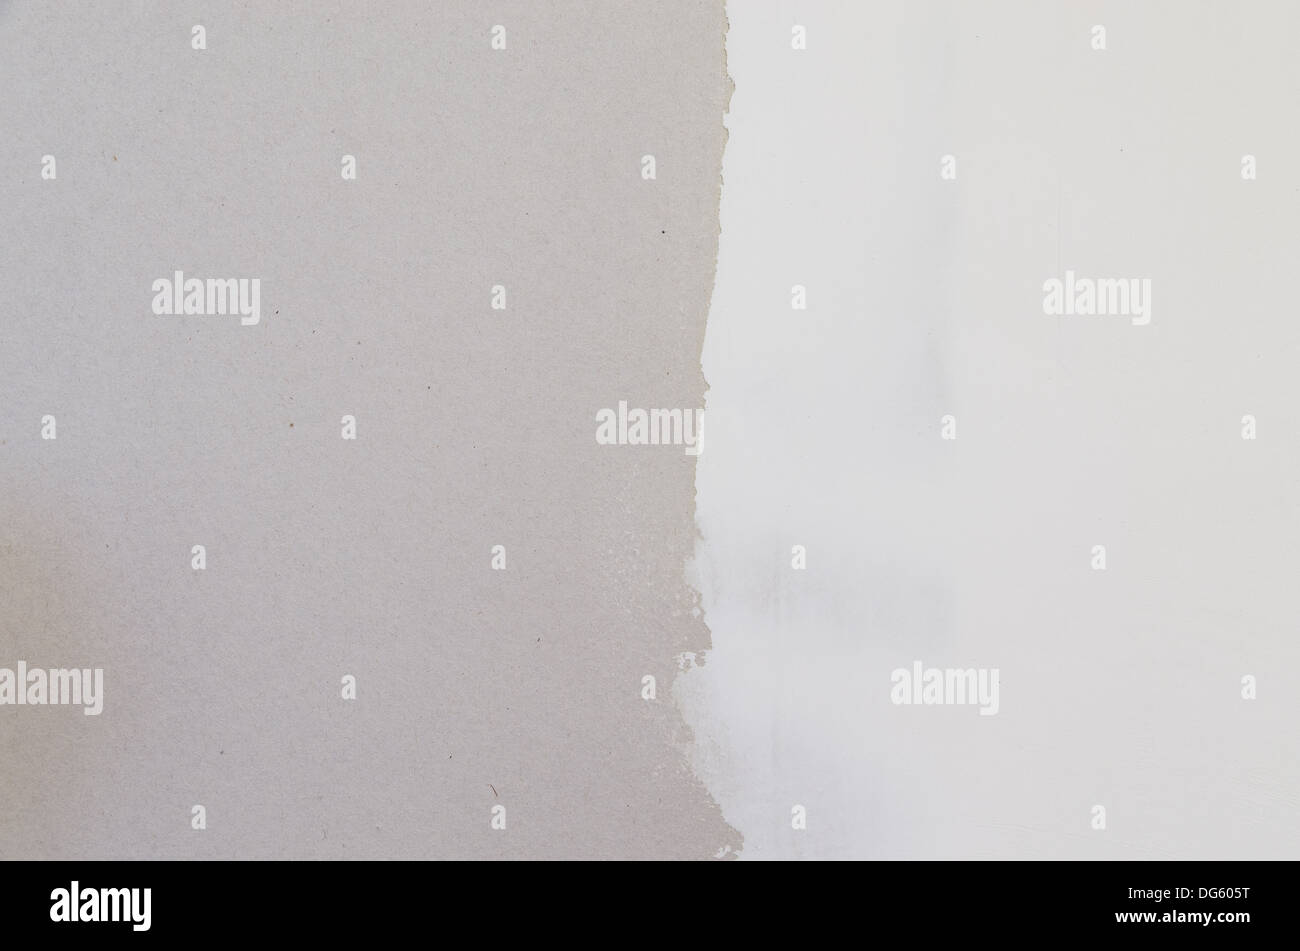 drywall with half covered with joint compound spackle background - Stock Image